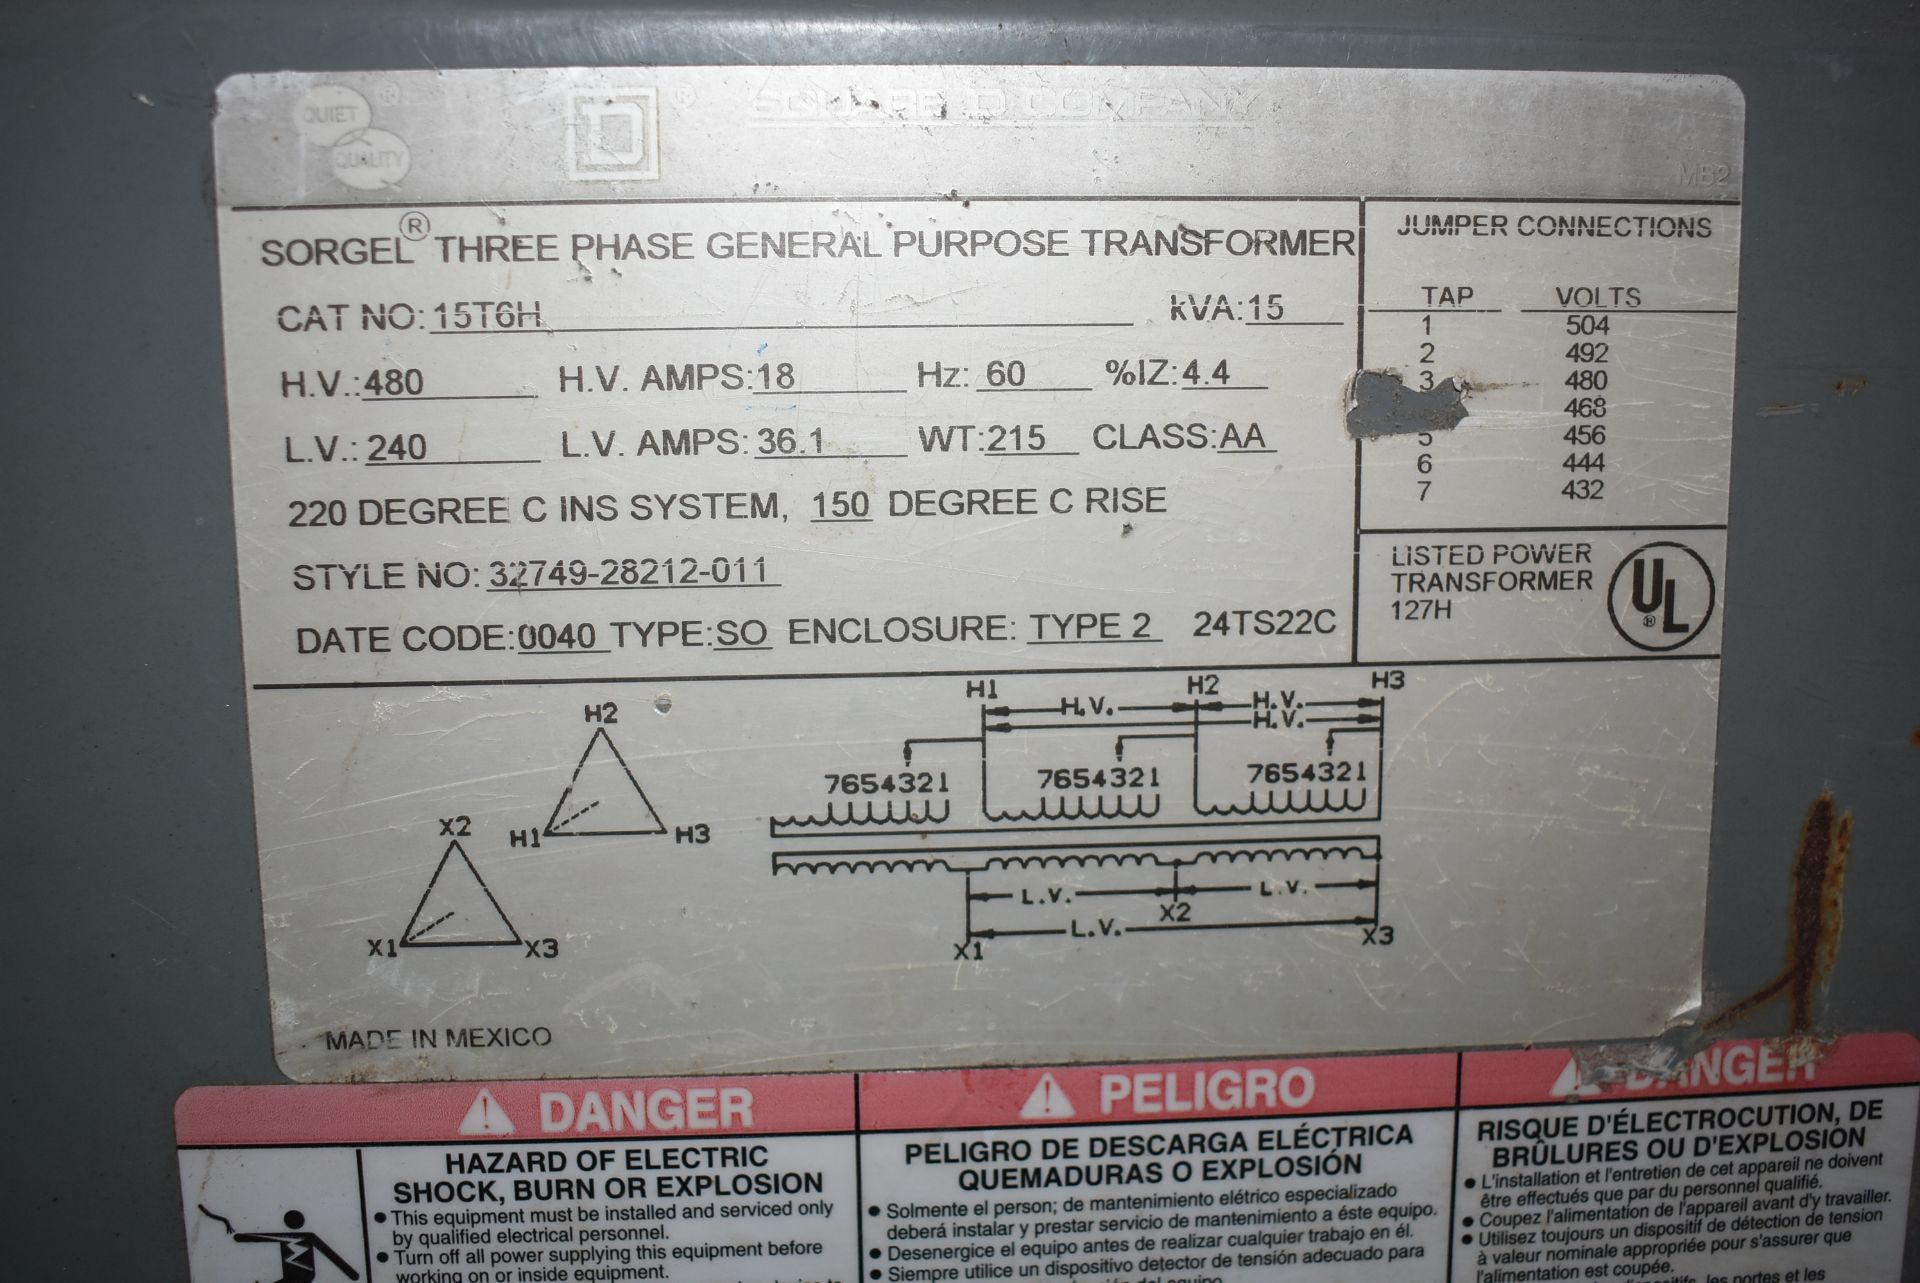 Square D Transformer, Catalog 15T6H, Rated 15 KYA - Image 2 of 2